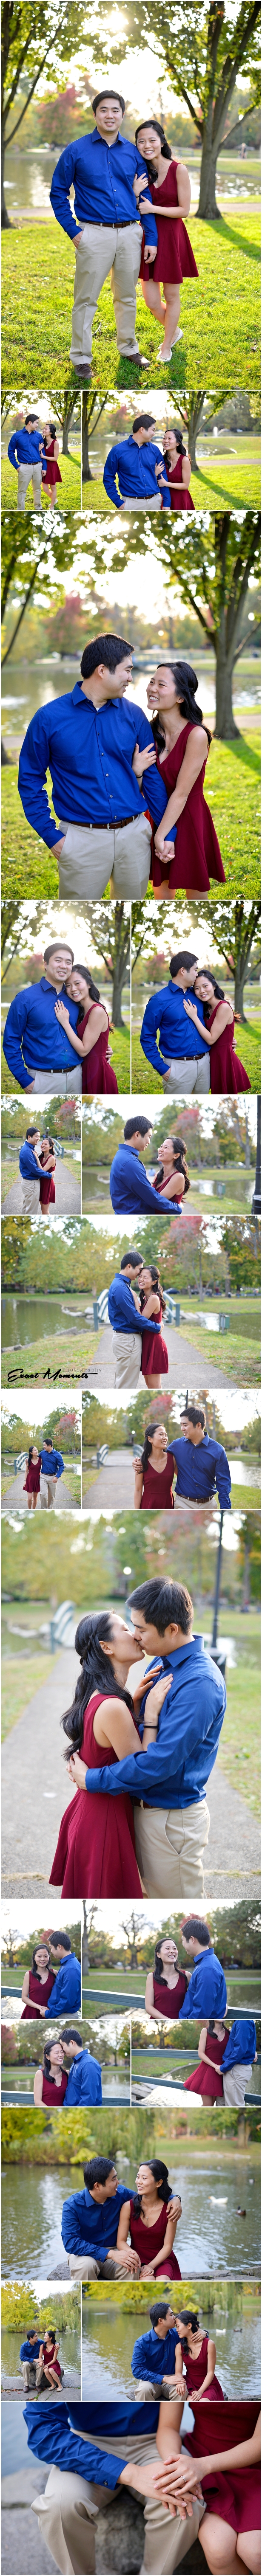 Engagement Session in German Village Columbus